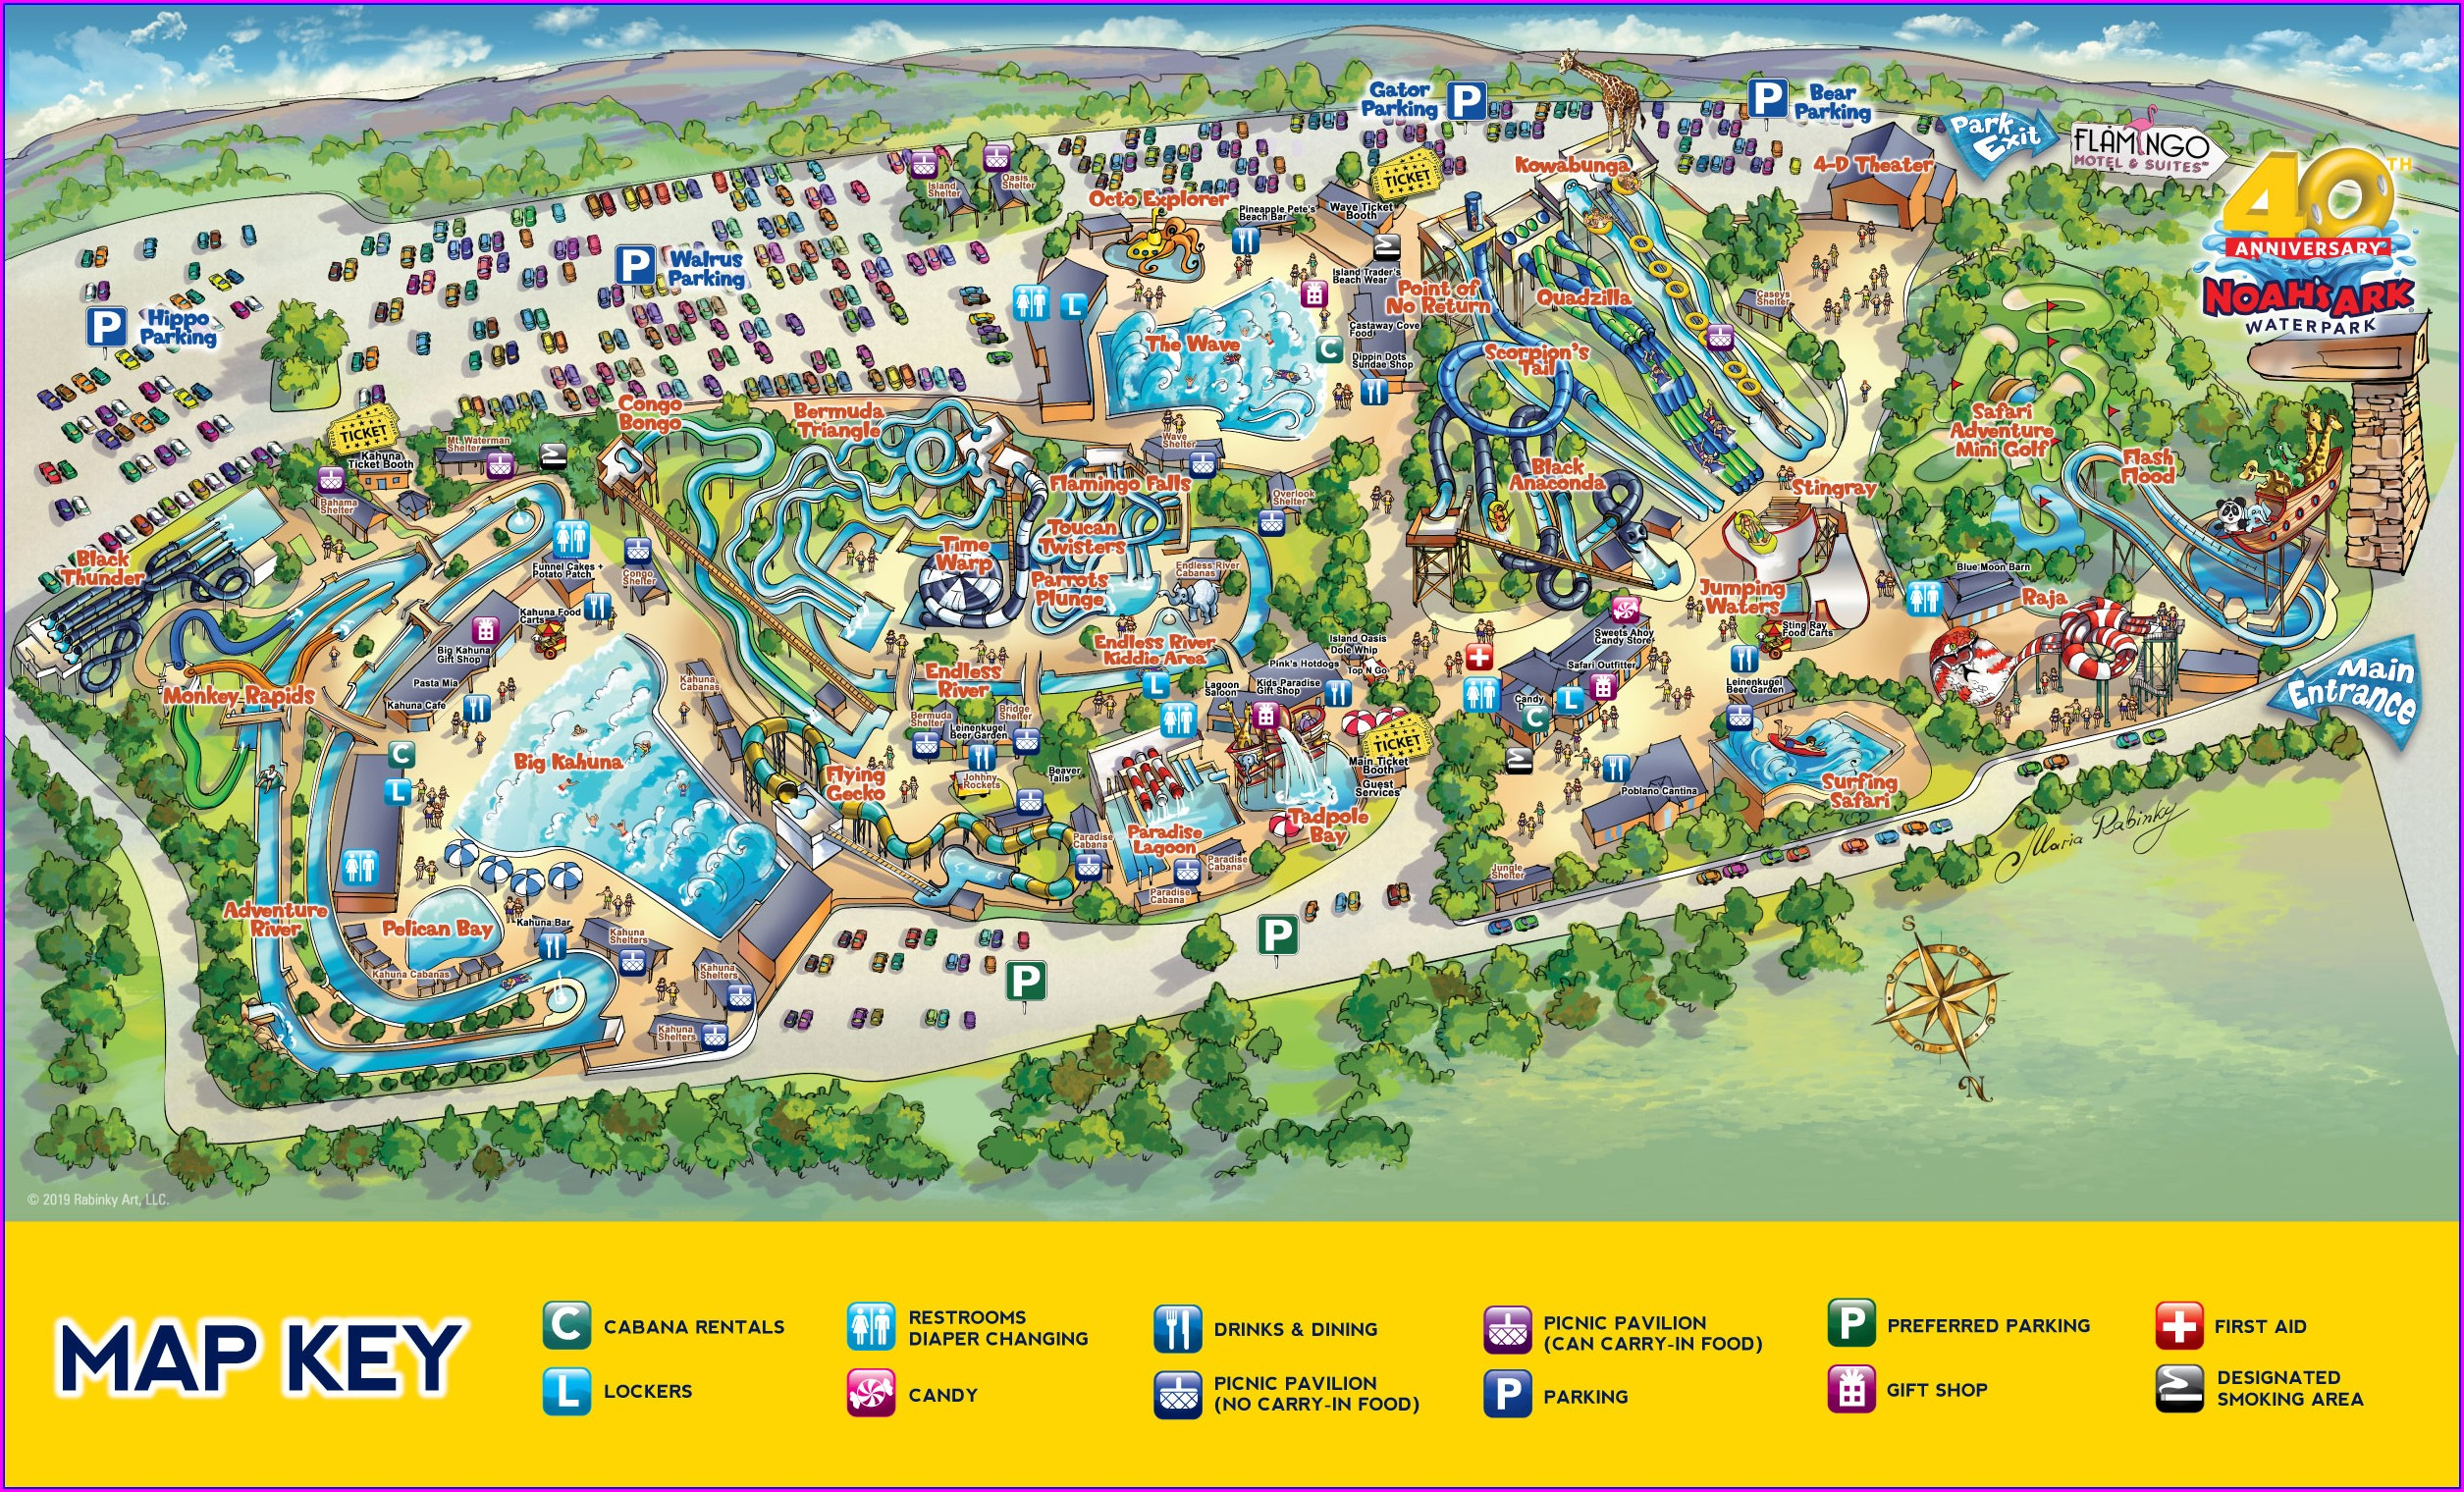 Wilderness Resort Wisconsin Dells Map Pdf